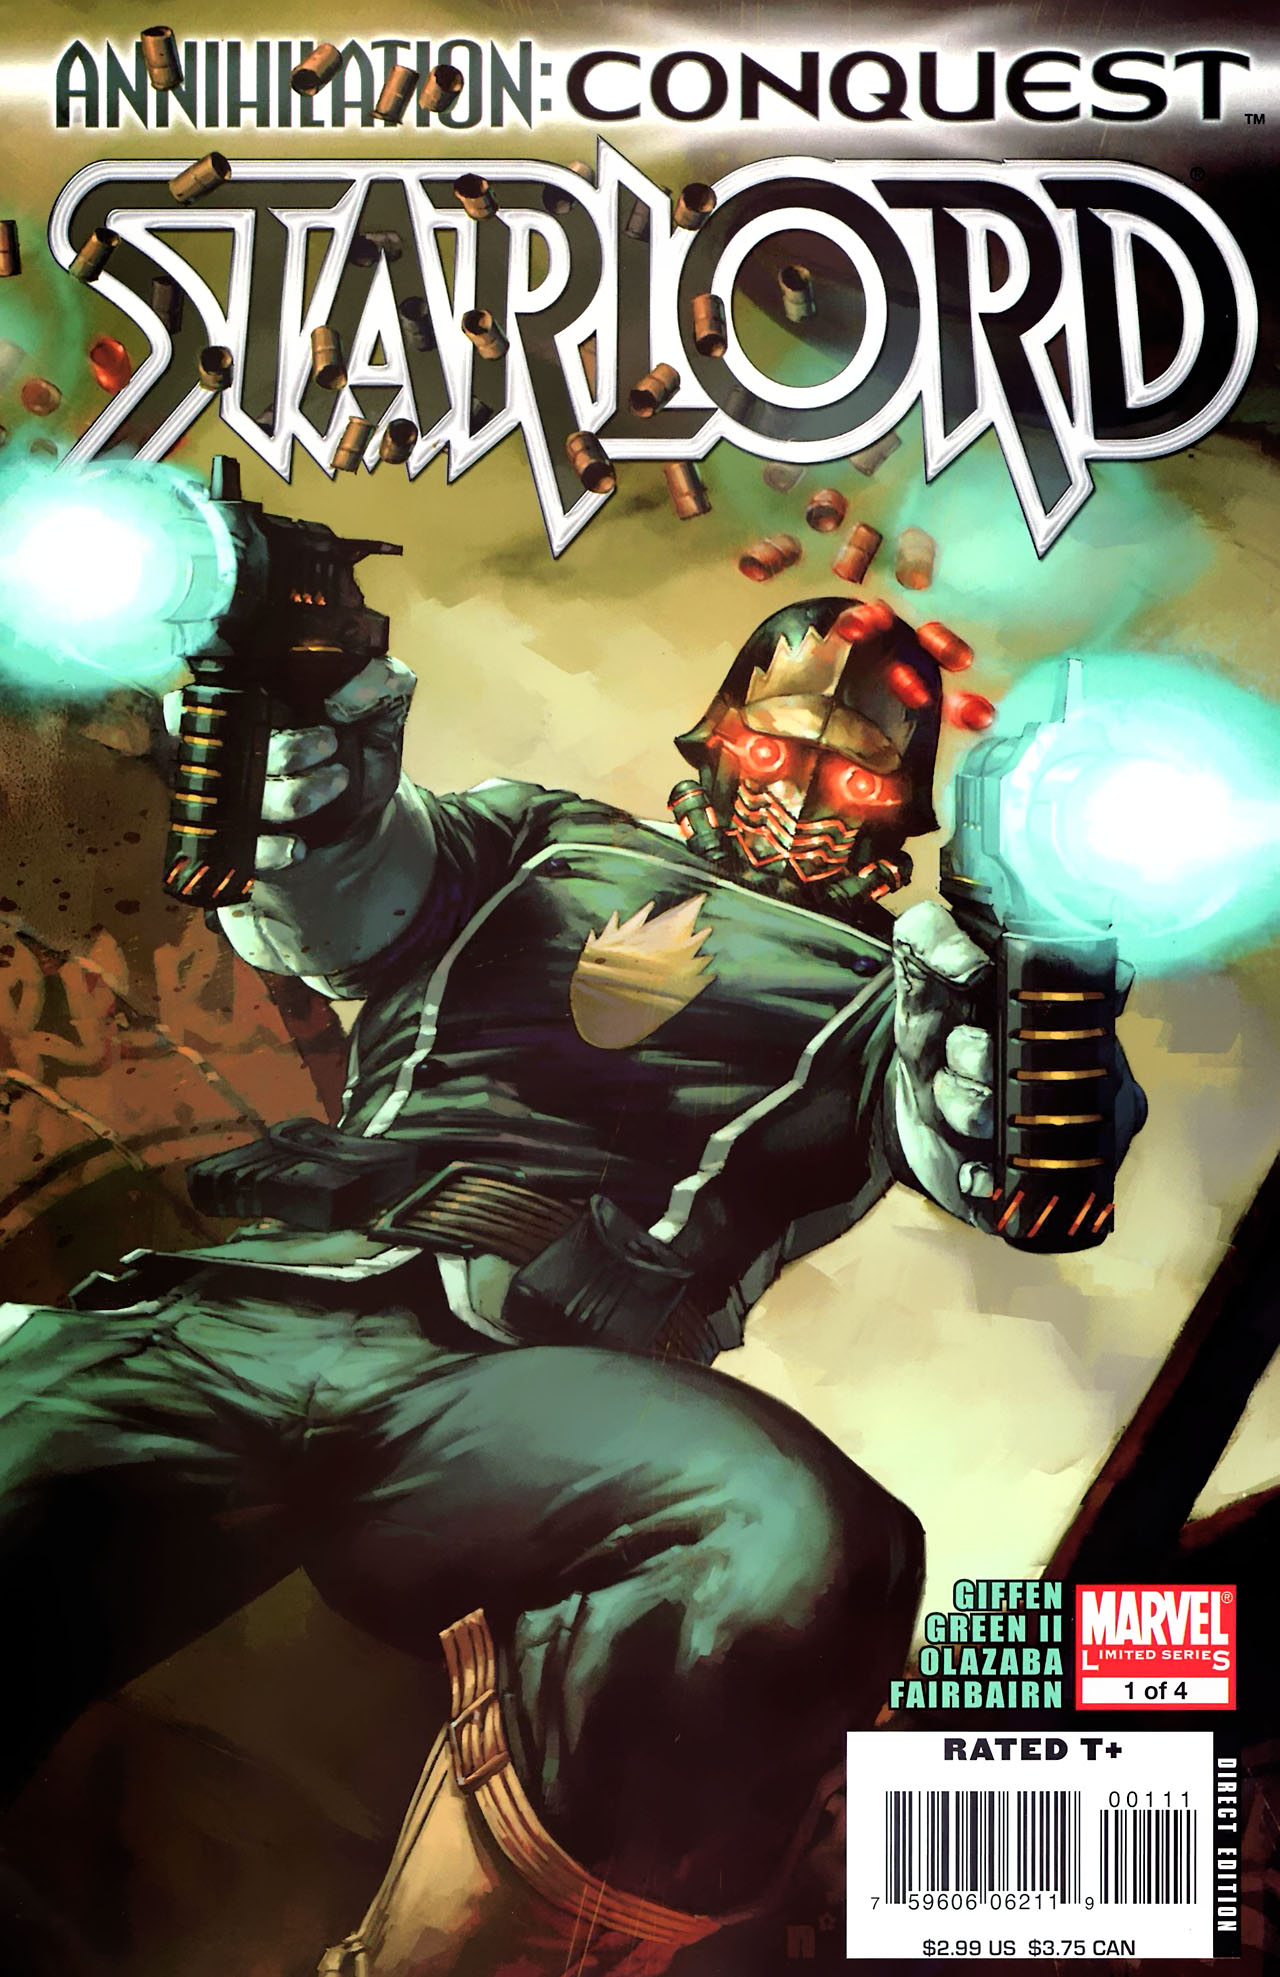 Read online Annihilation: Conquest - Starlord comic -  Issue #1 - 1